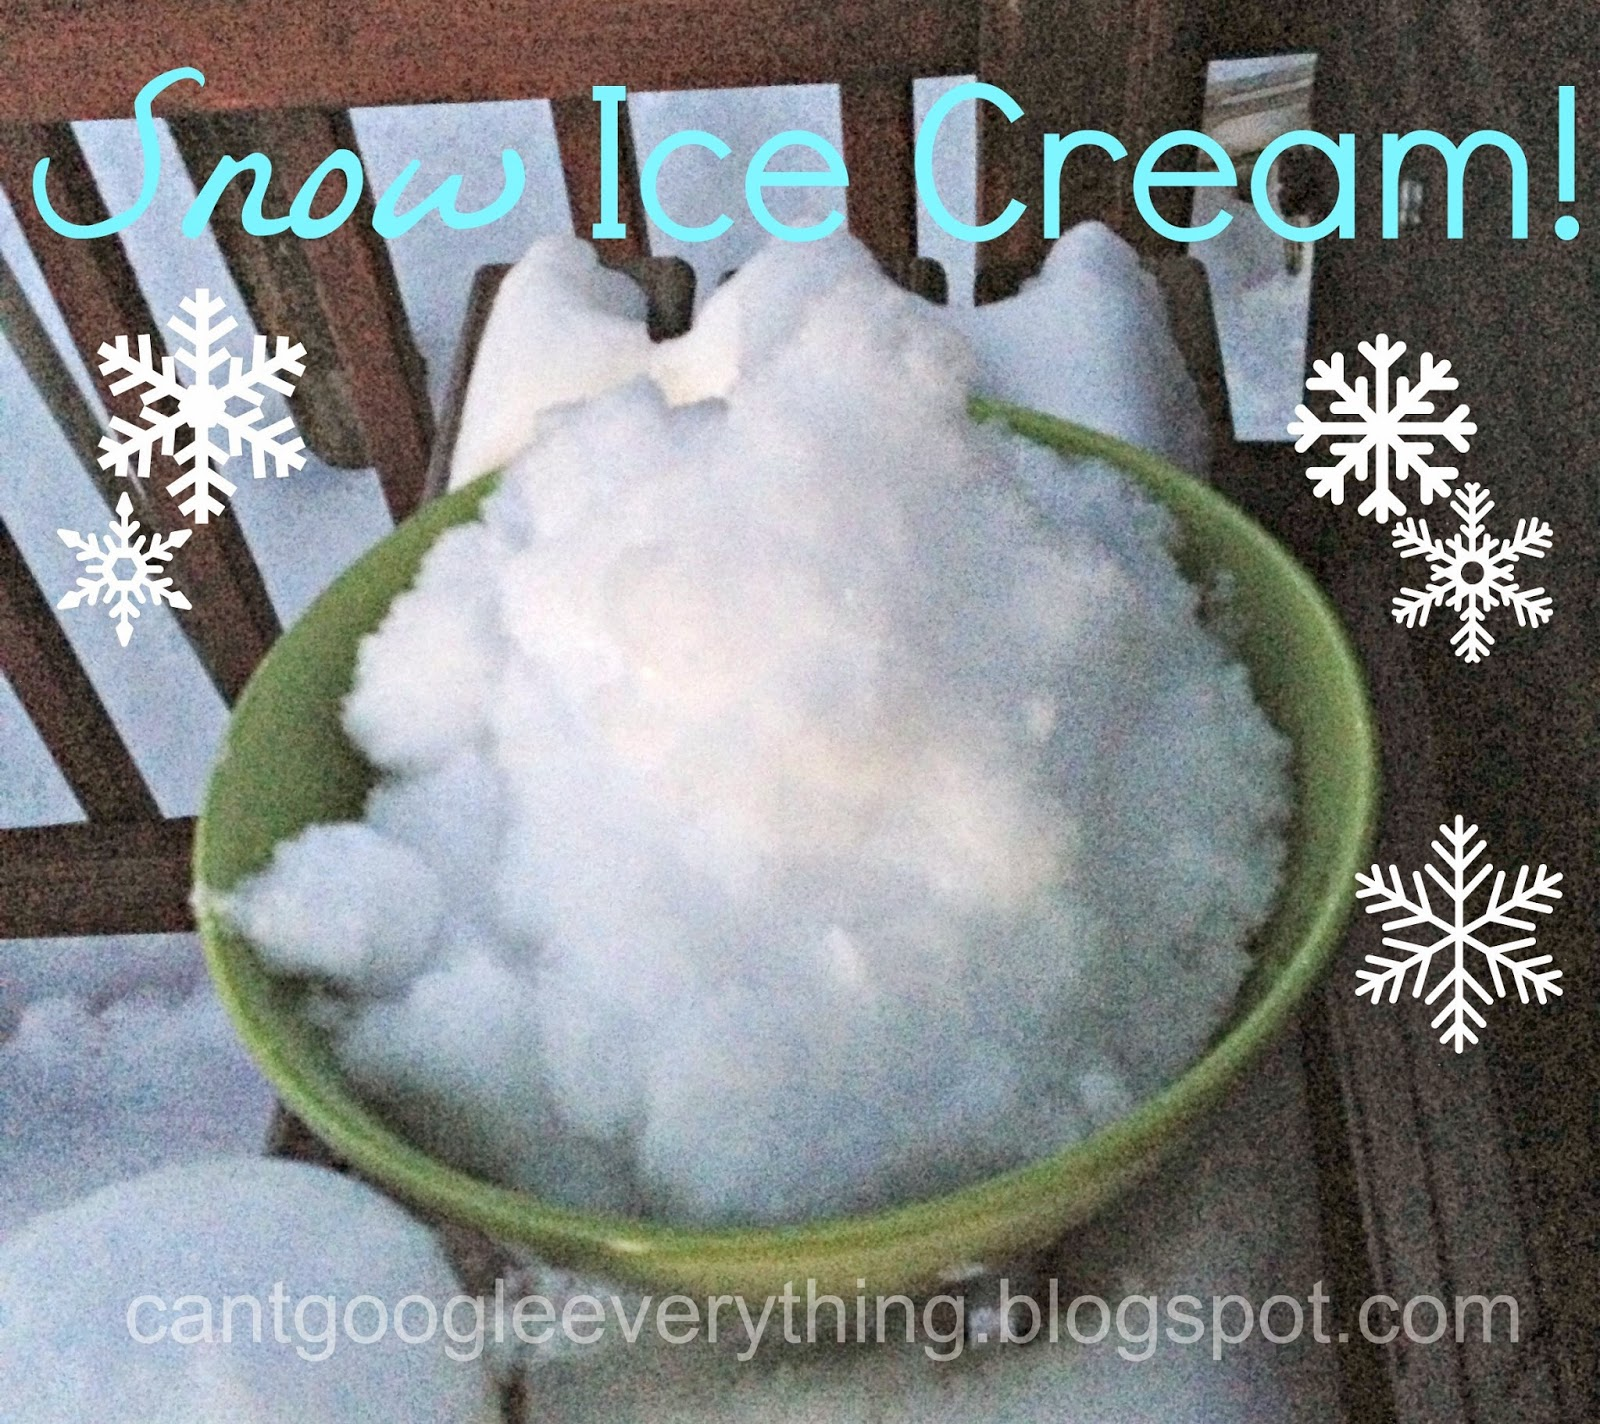 http://cantgoogleeverything.blogspot.com/2014/01/snow-ice-cream.html